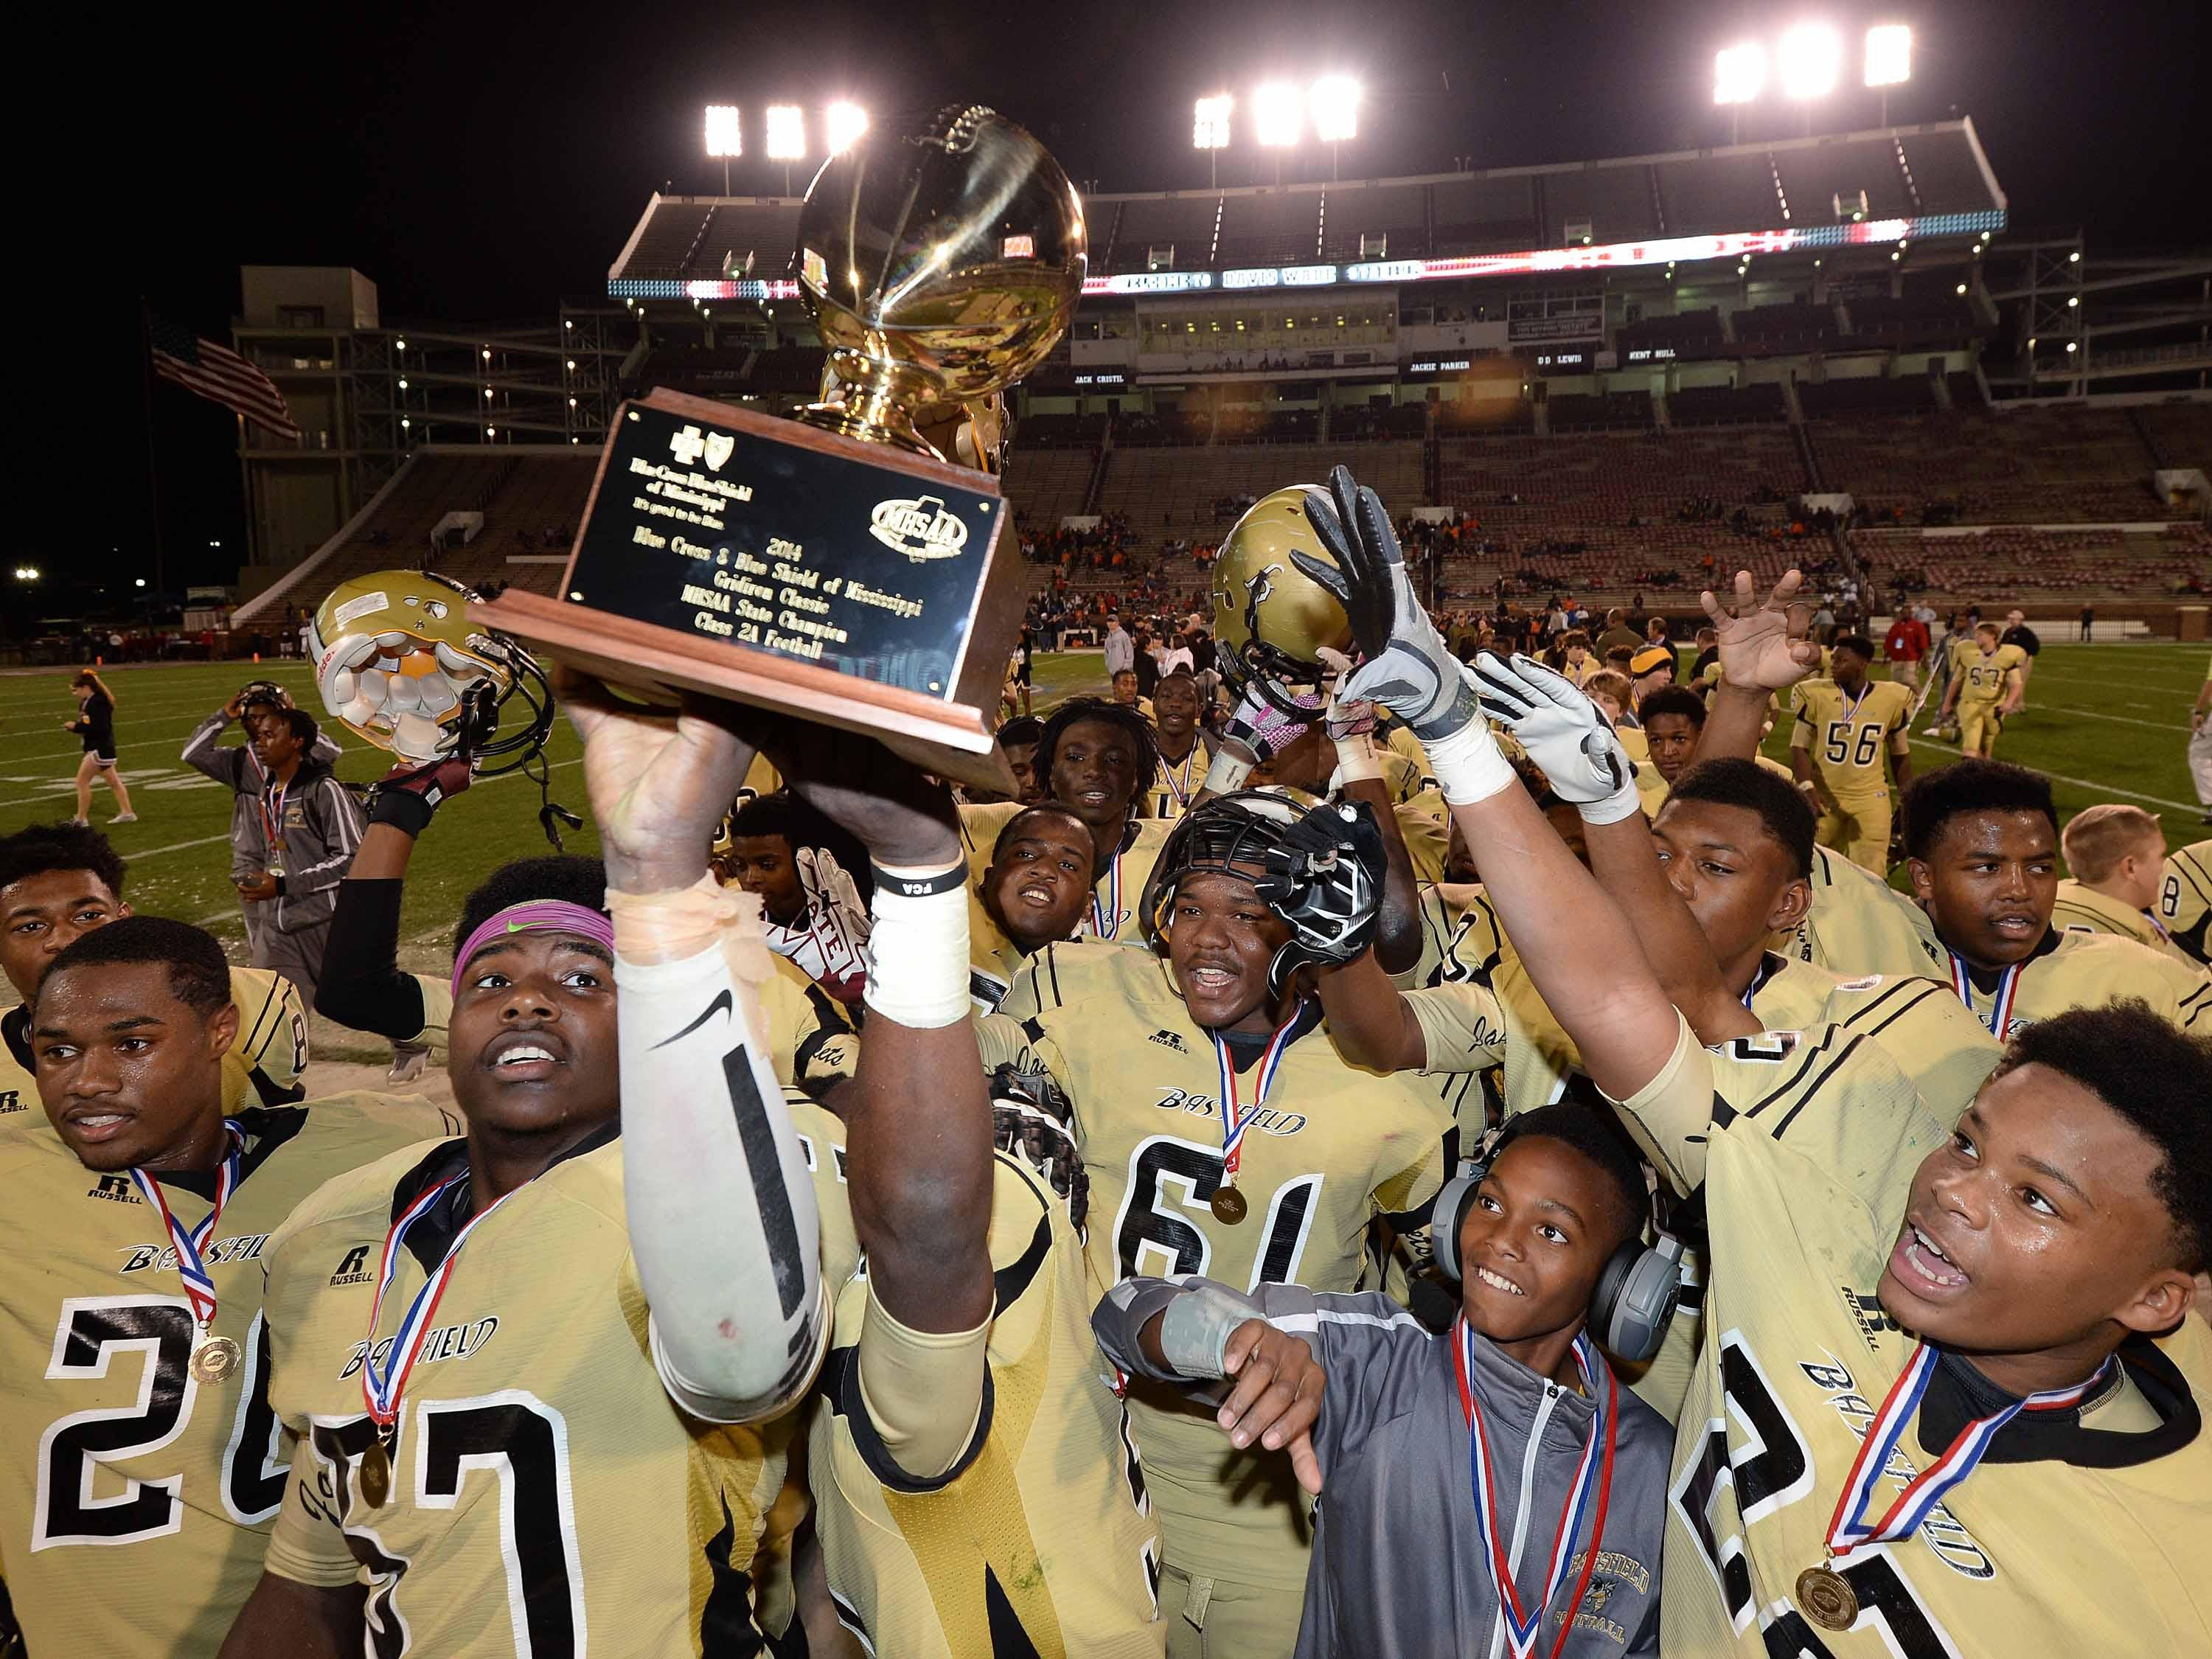 Bassfield has won three consecutive Class 2A State Championships.